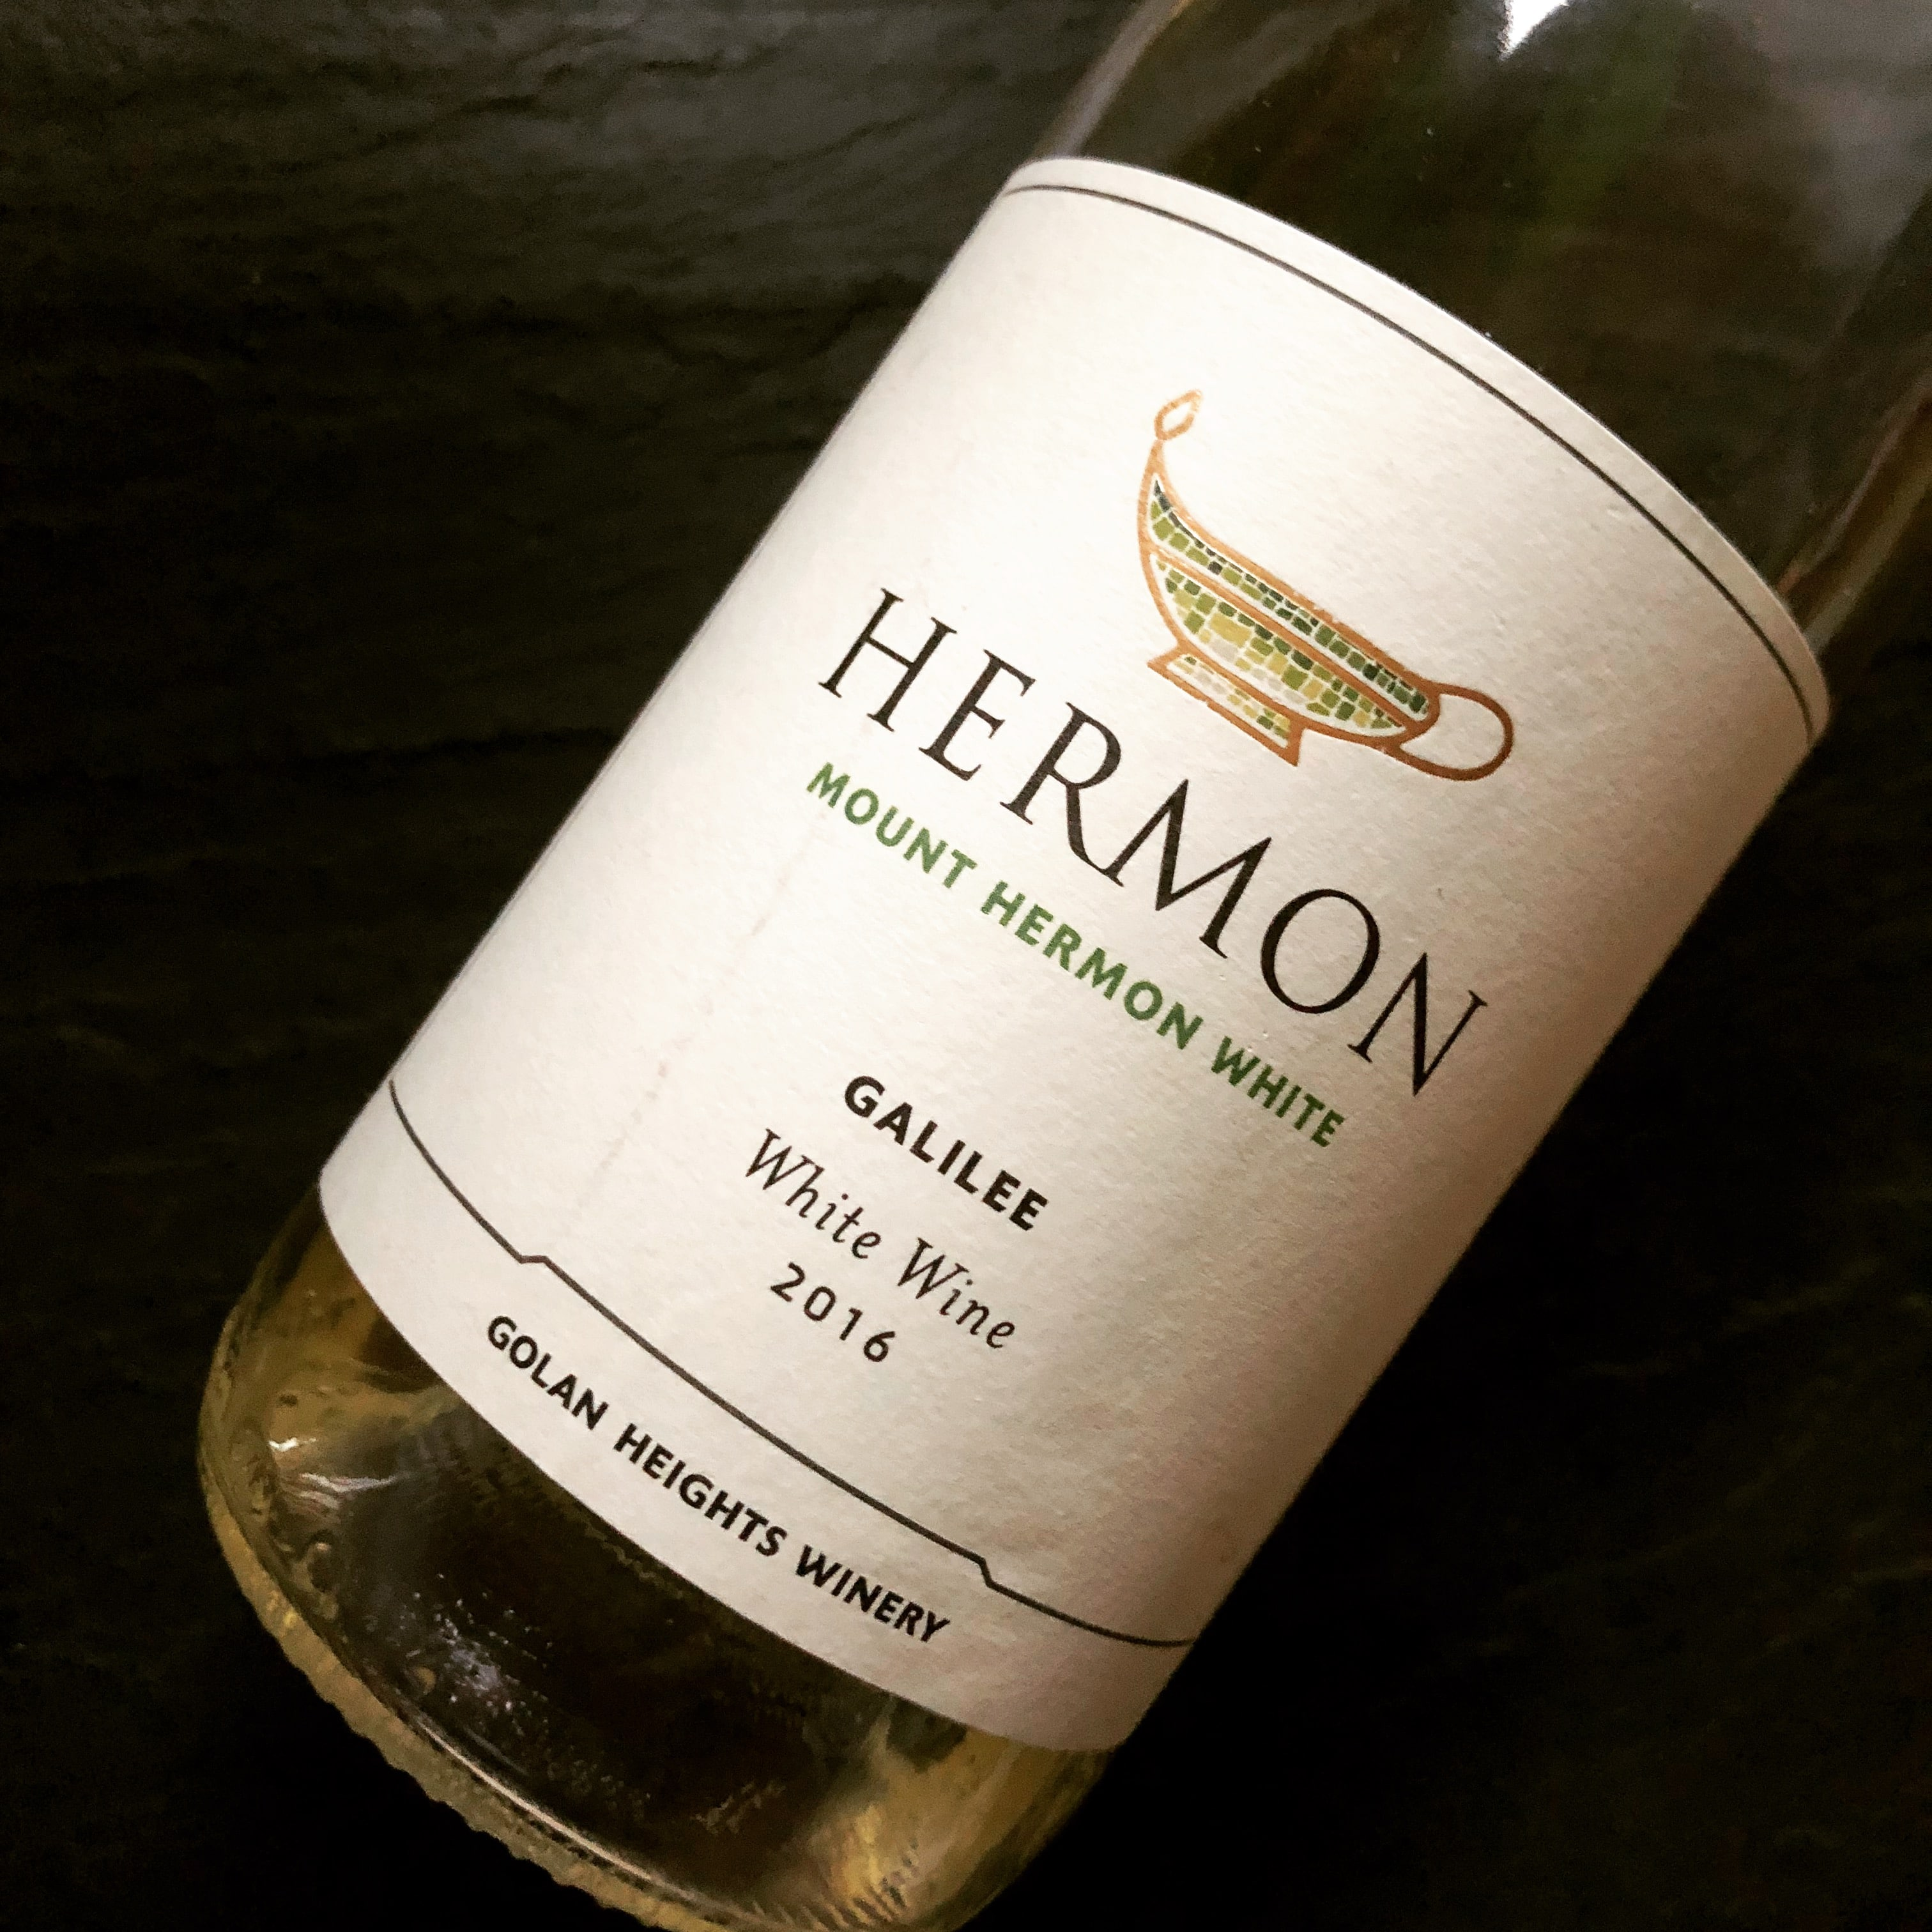 Golan Heights Winery Mount Hermon White 2016